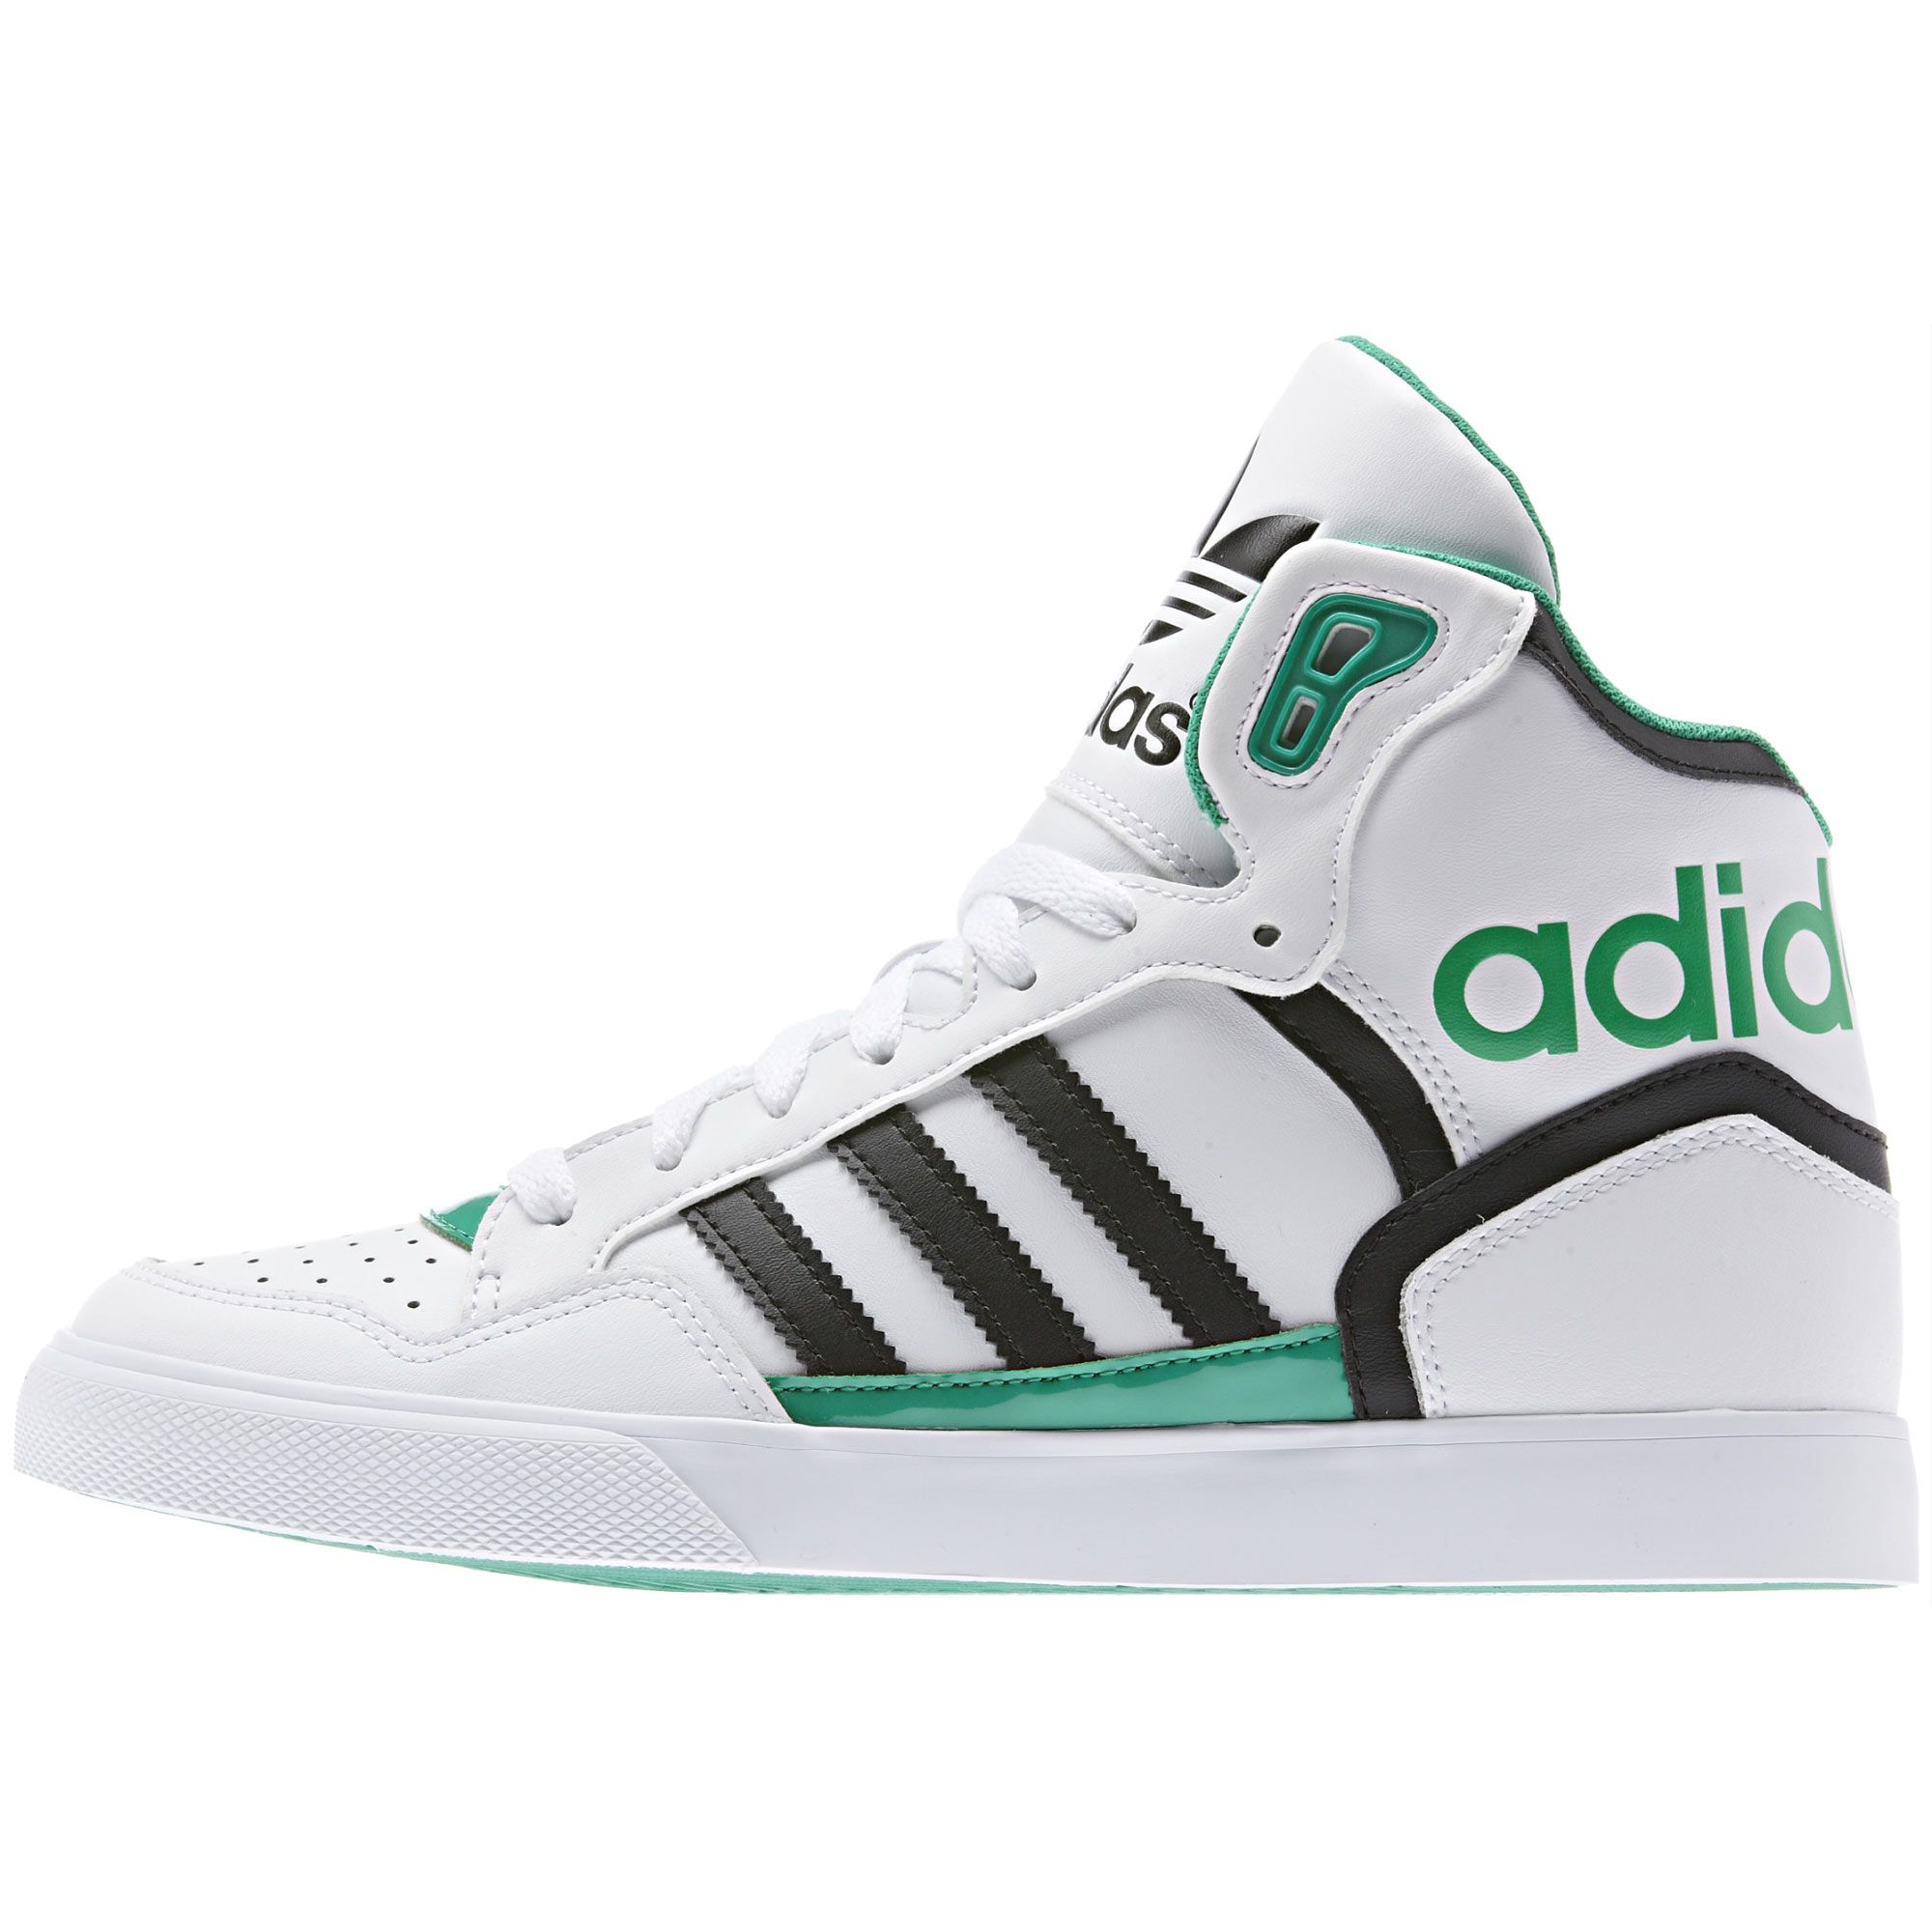 Adidas Originals Extaball blancas